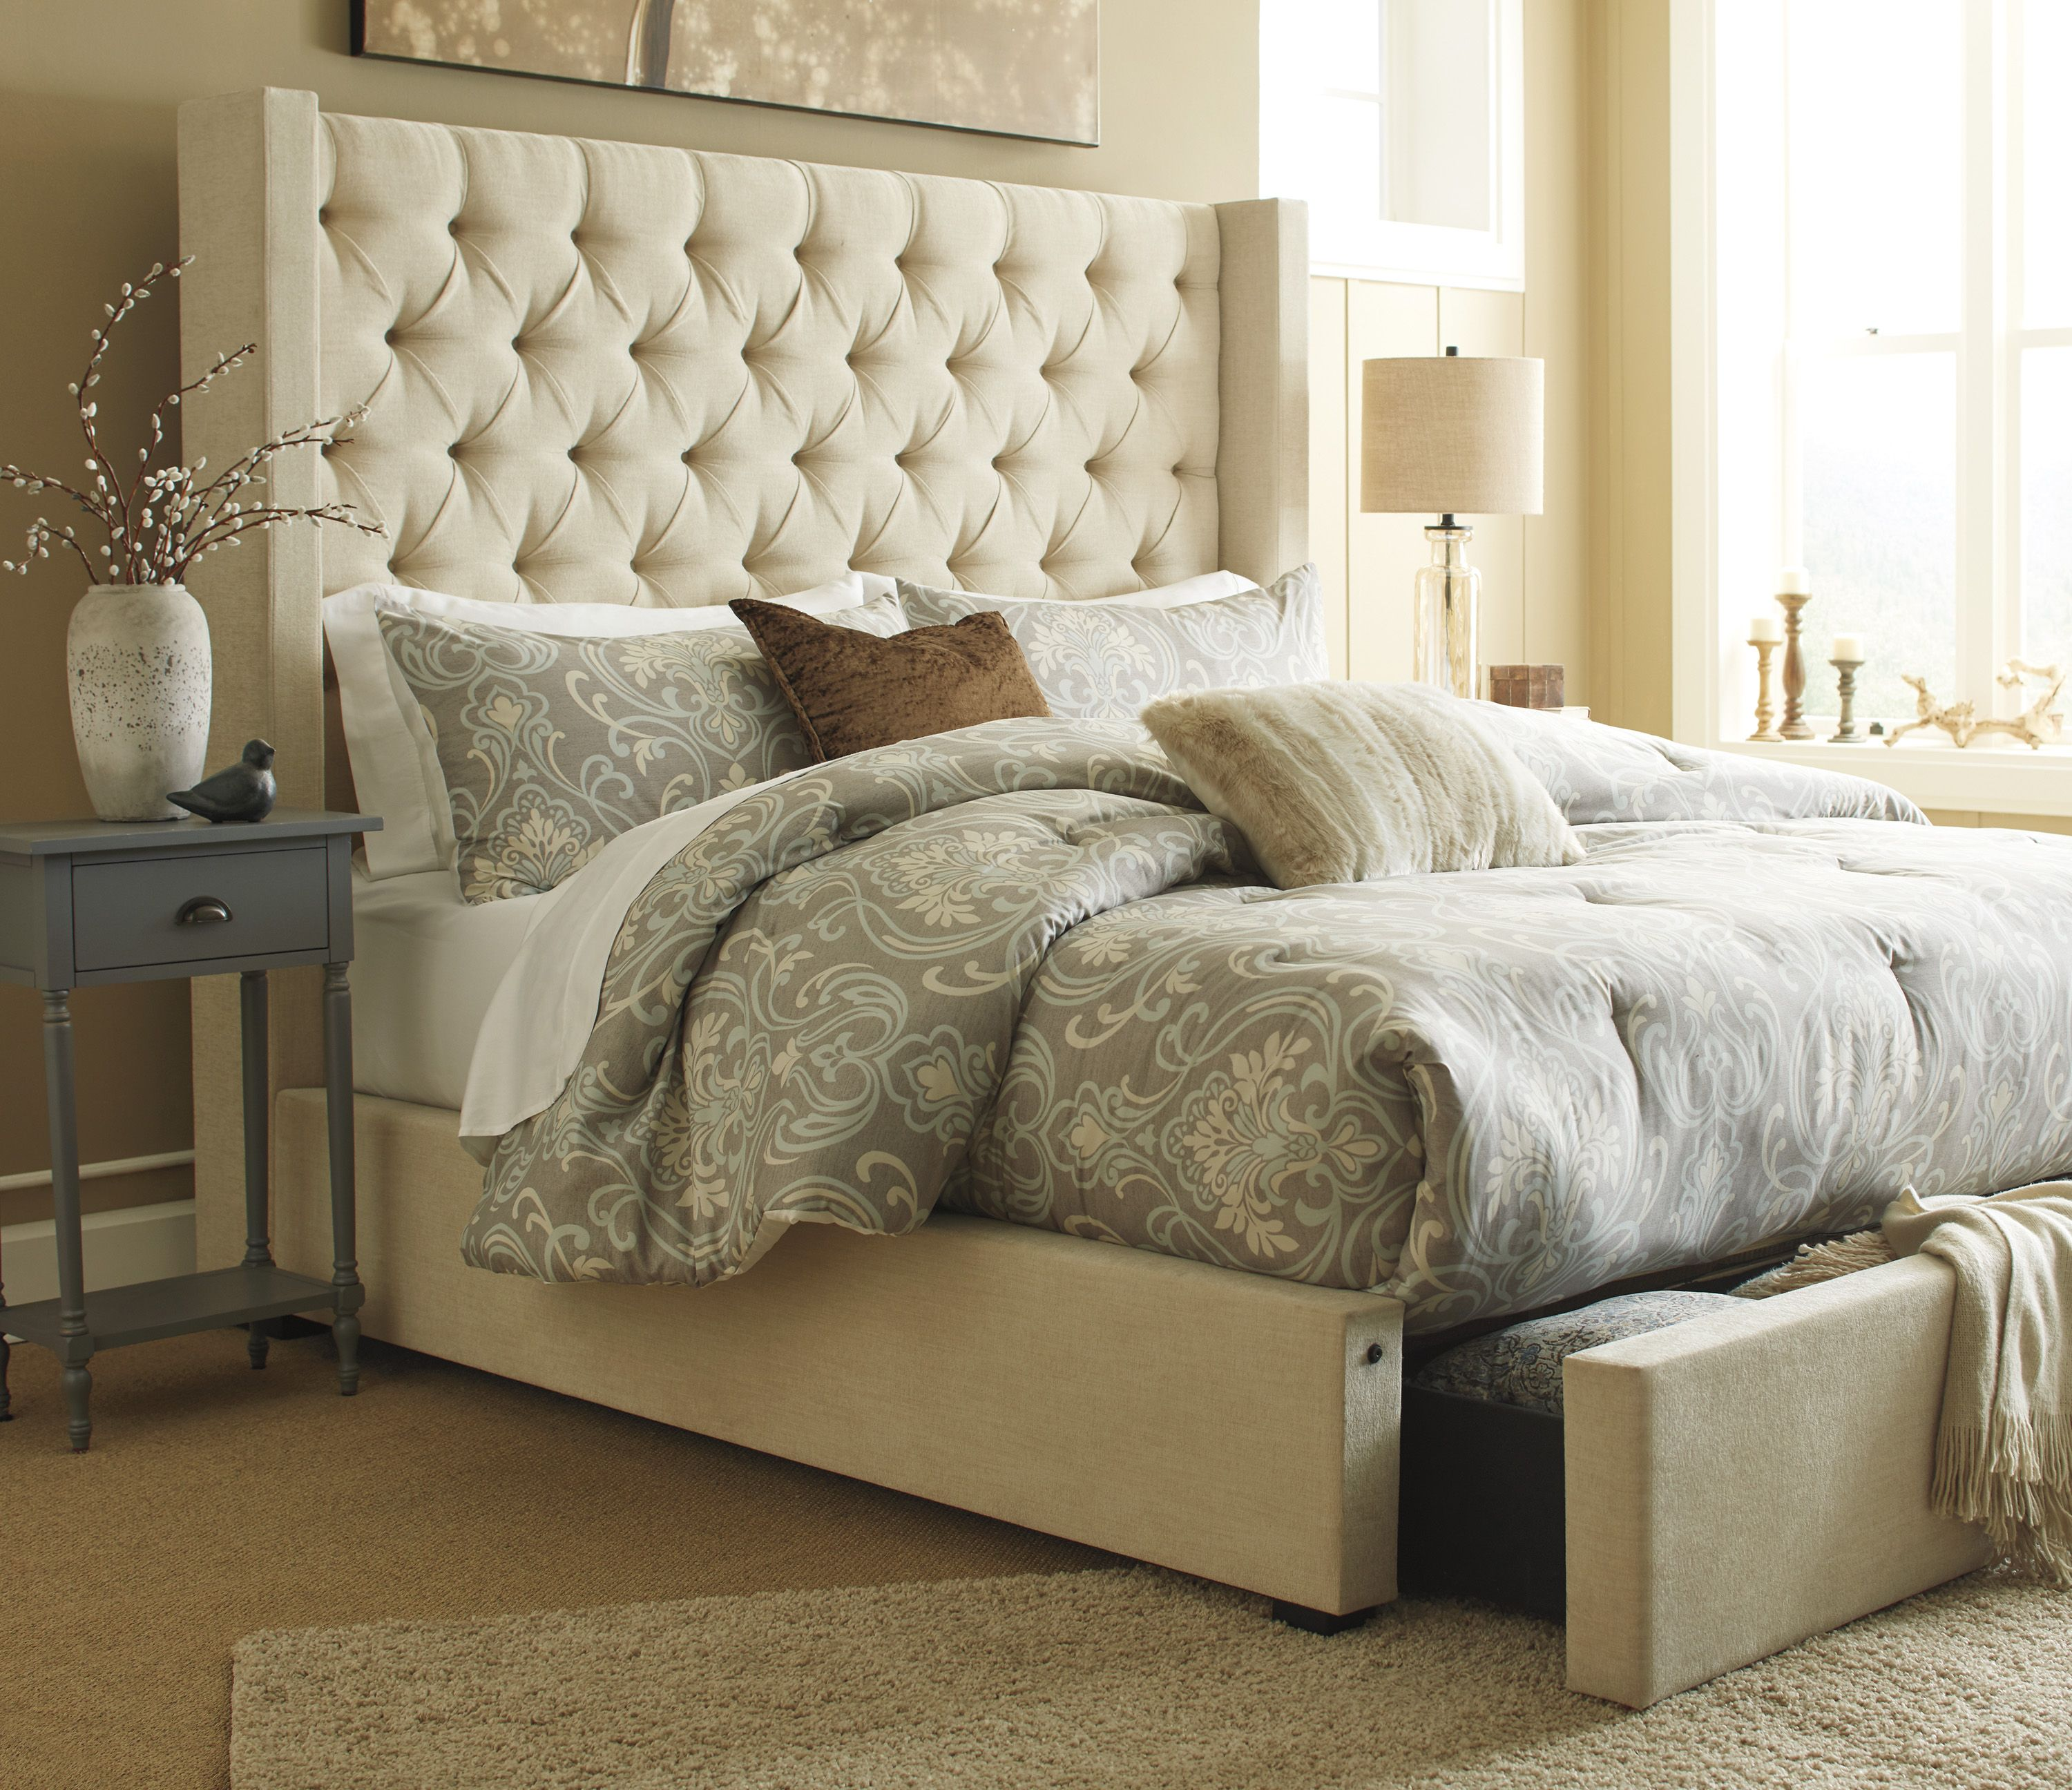 Norrister Queen Bed Is A Breath Of Fresh Style This Masterpiece